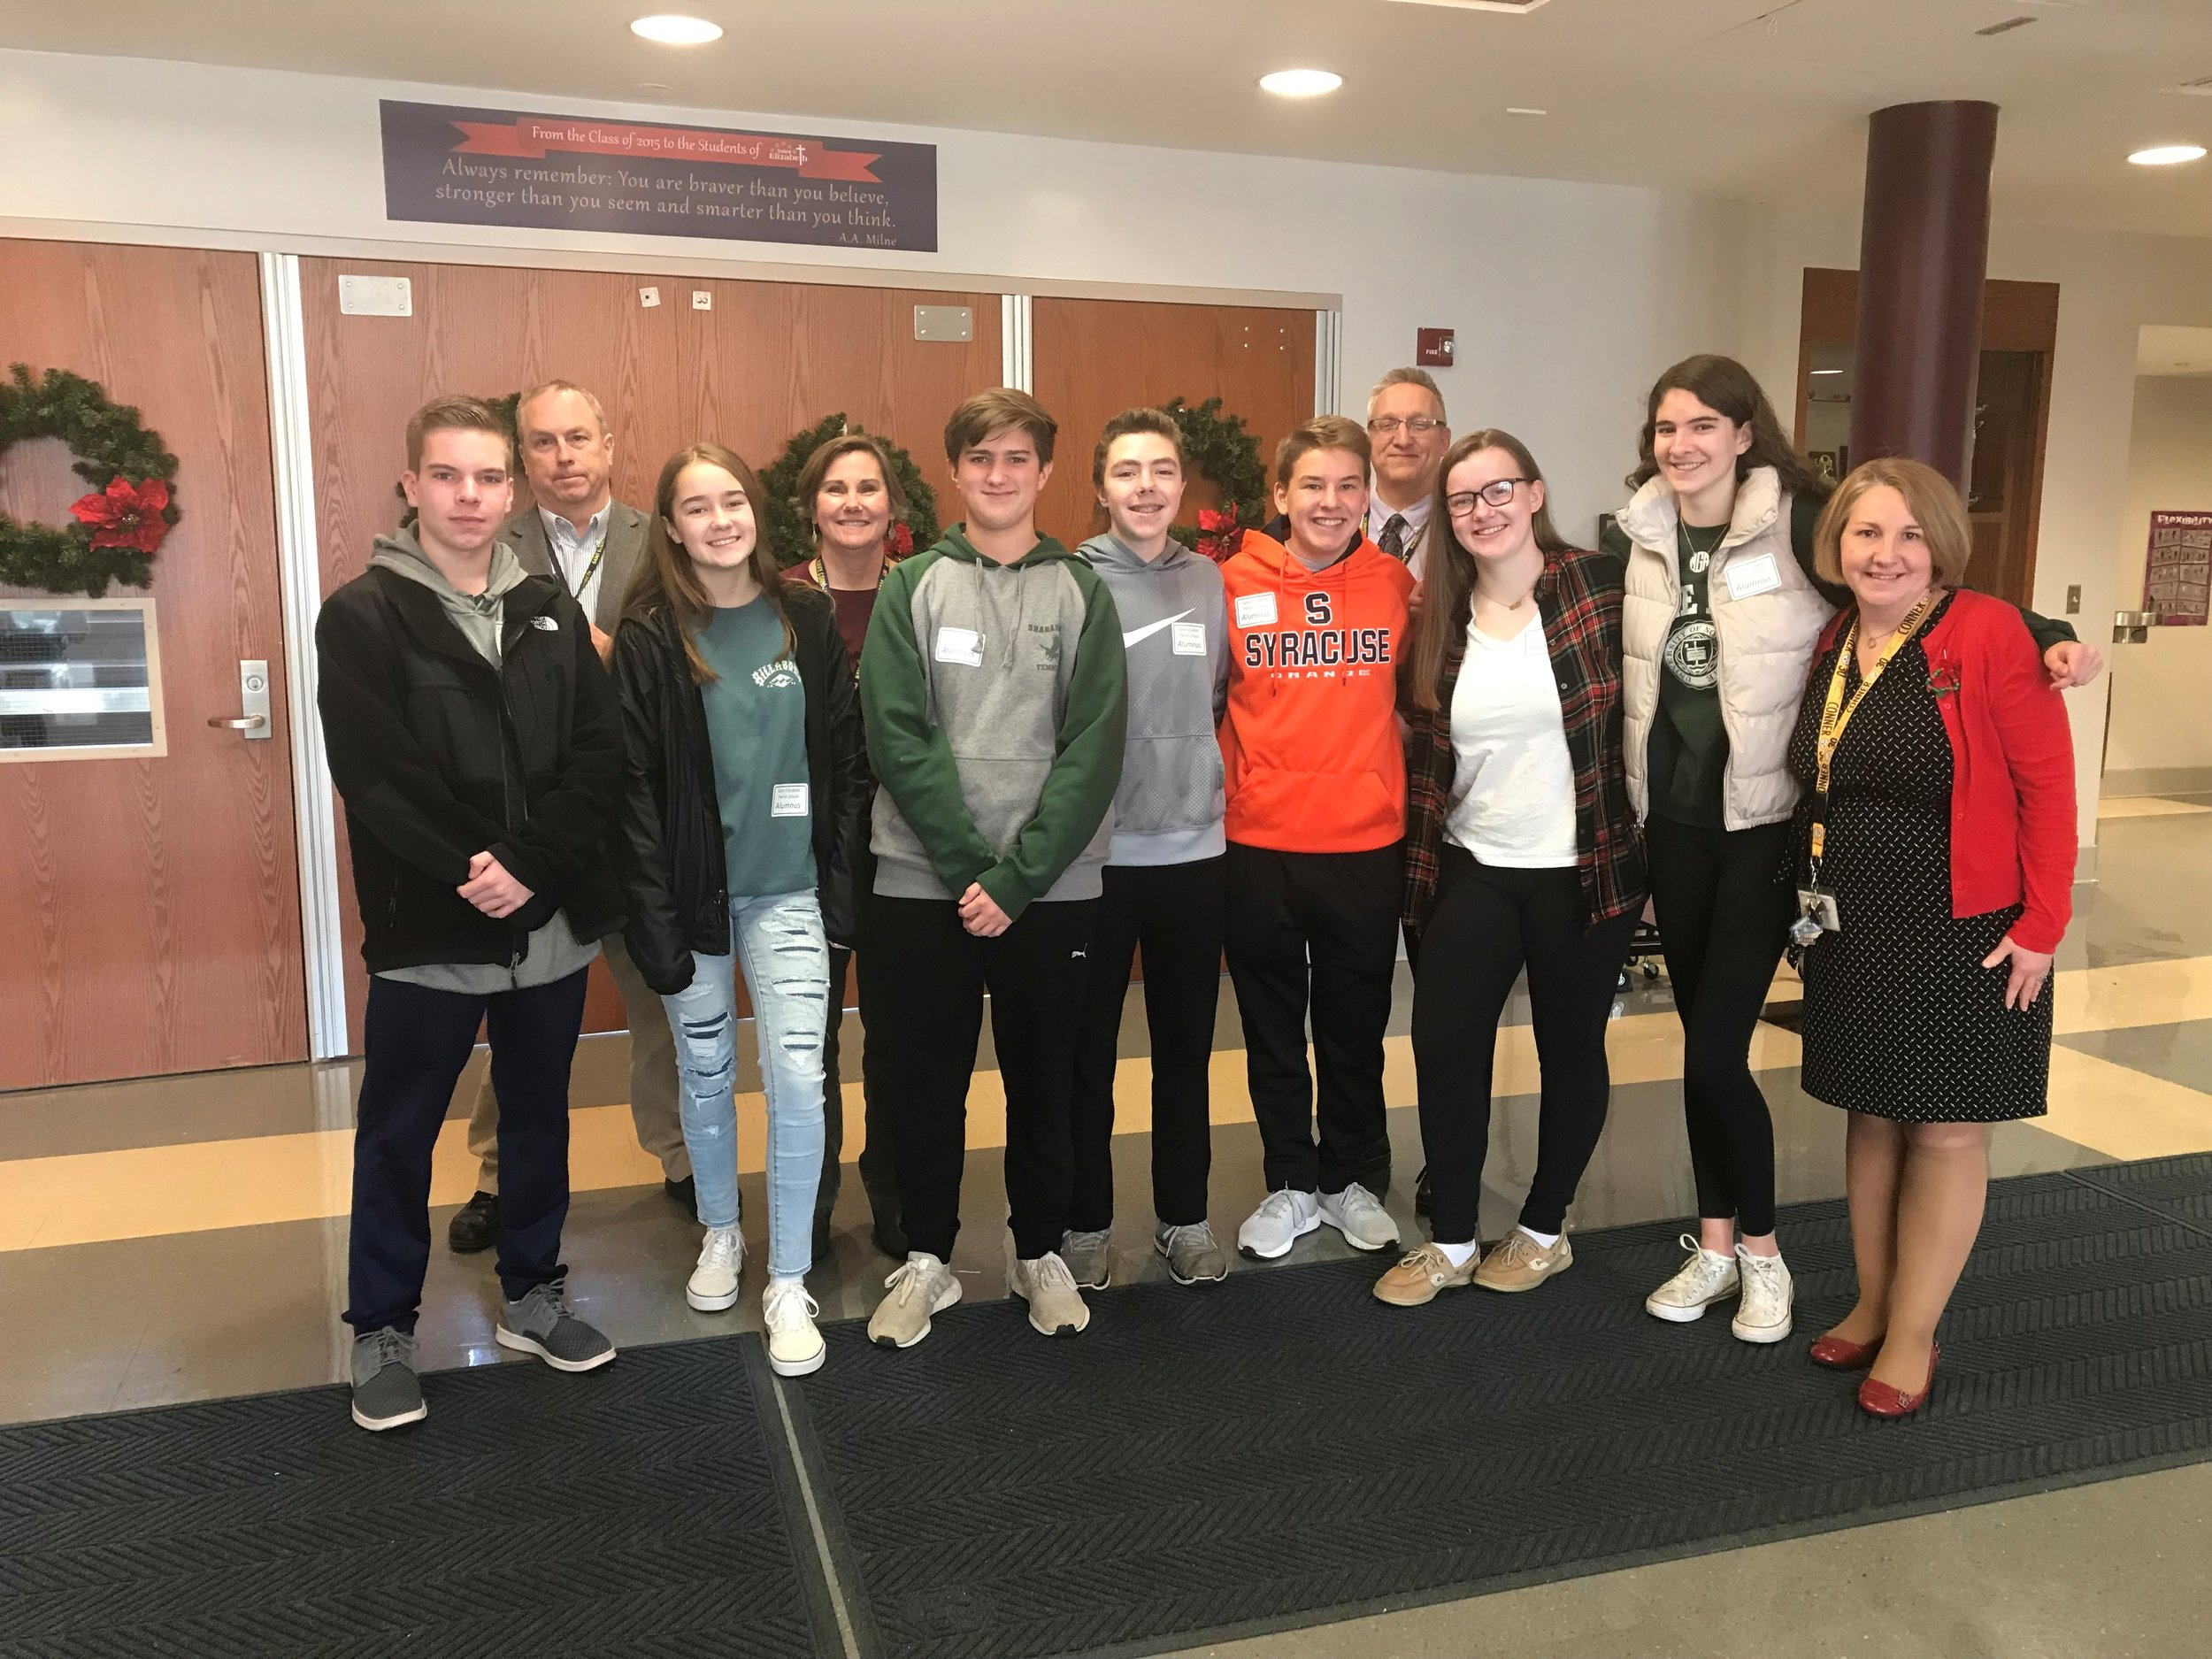 CLASS OF 2018:  Thursday, December 13, 2018: Today we had a very nice visit from several of our    #Classof2018    Alumni. All are now students at    Bishop Shanahan High School    (Class of 2022). From left: Michael Thais, Mr. Bill Kuhn, Olivia Miller, Mrs. Judith Kluth, Jack Ringenbach, Jason Hoertz, Jack Boncek, Mr. Andrew Shirker, Cathleen Fisher, Maggie Grant. and Ms. Jennifer Nangle. (Photo by Mrs. Sara Richardson)